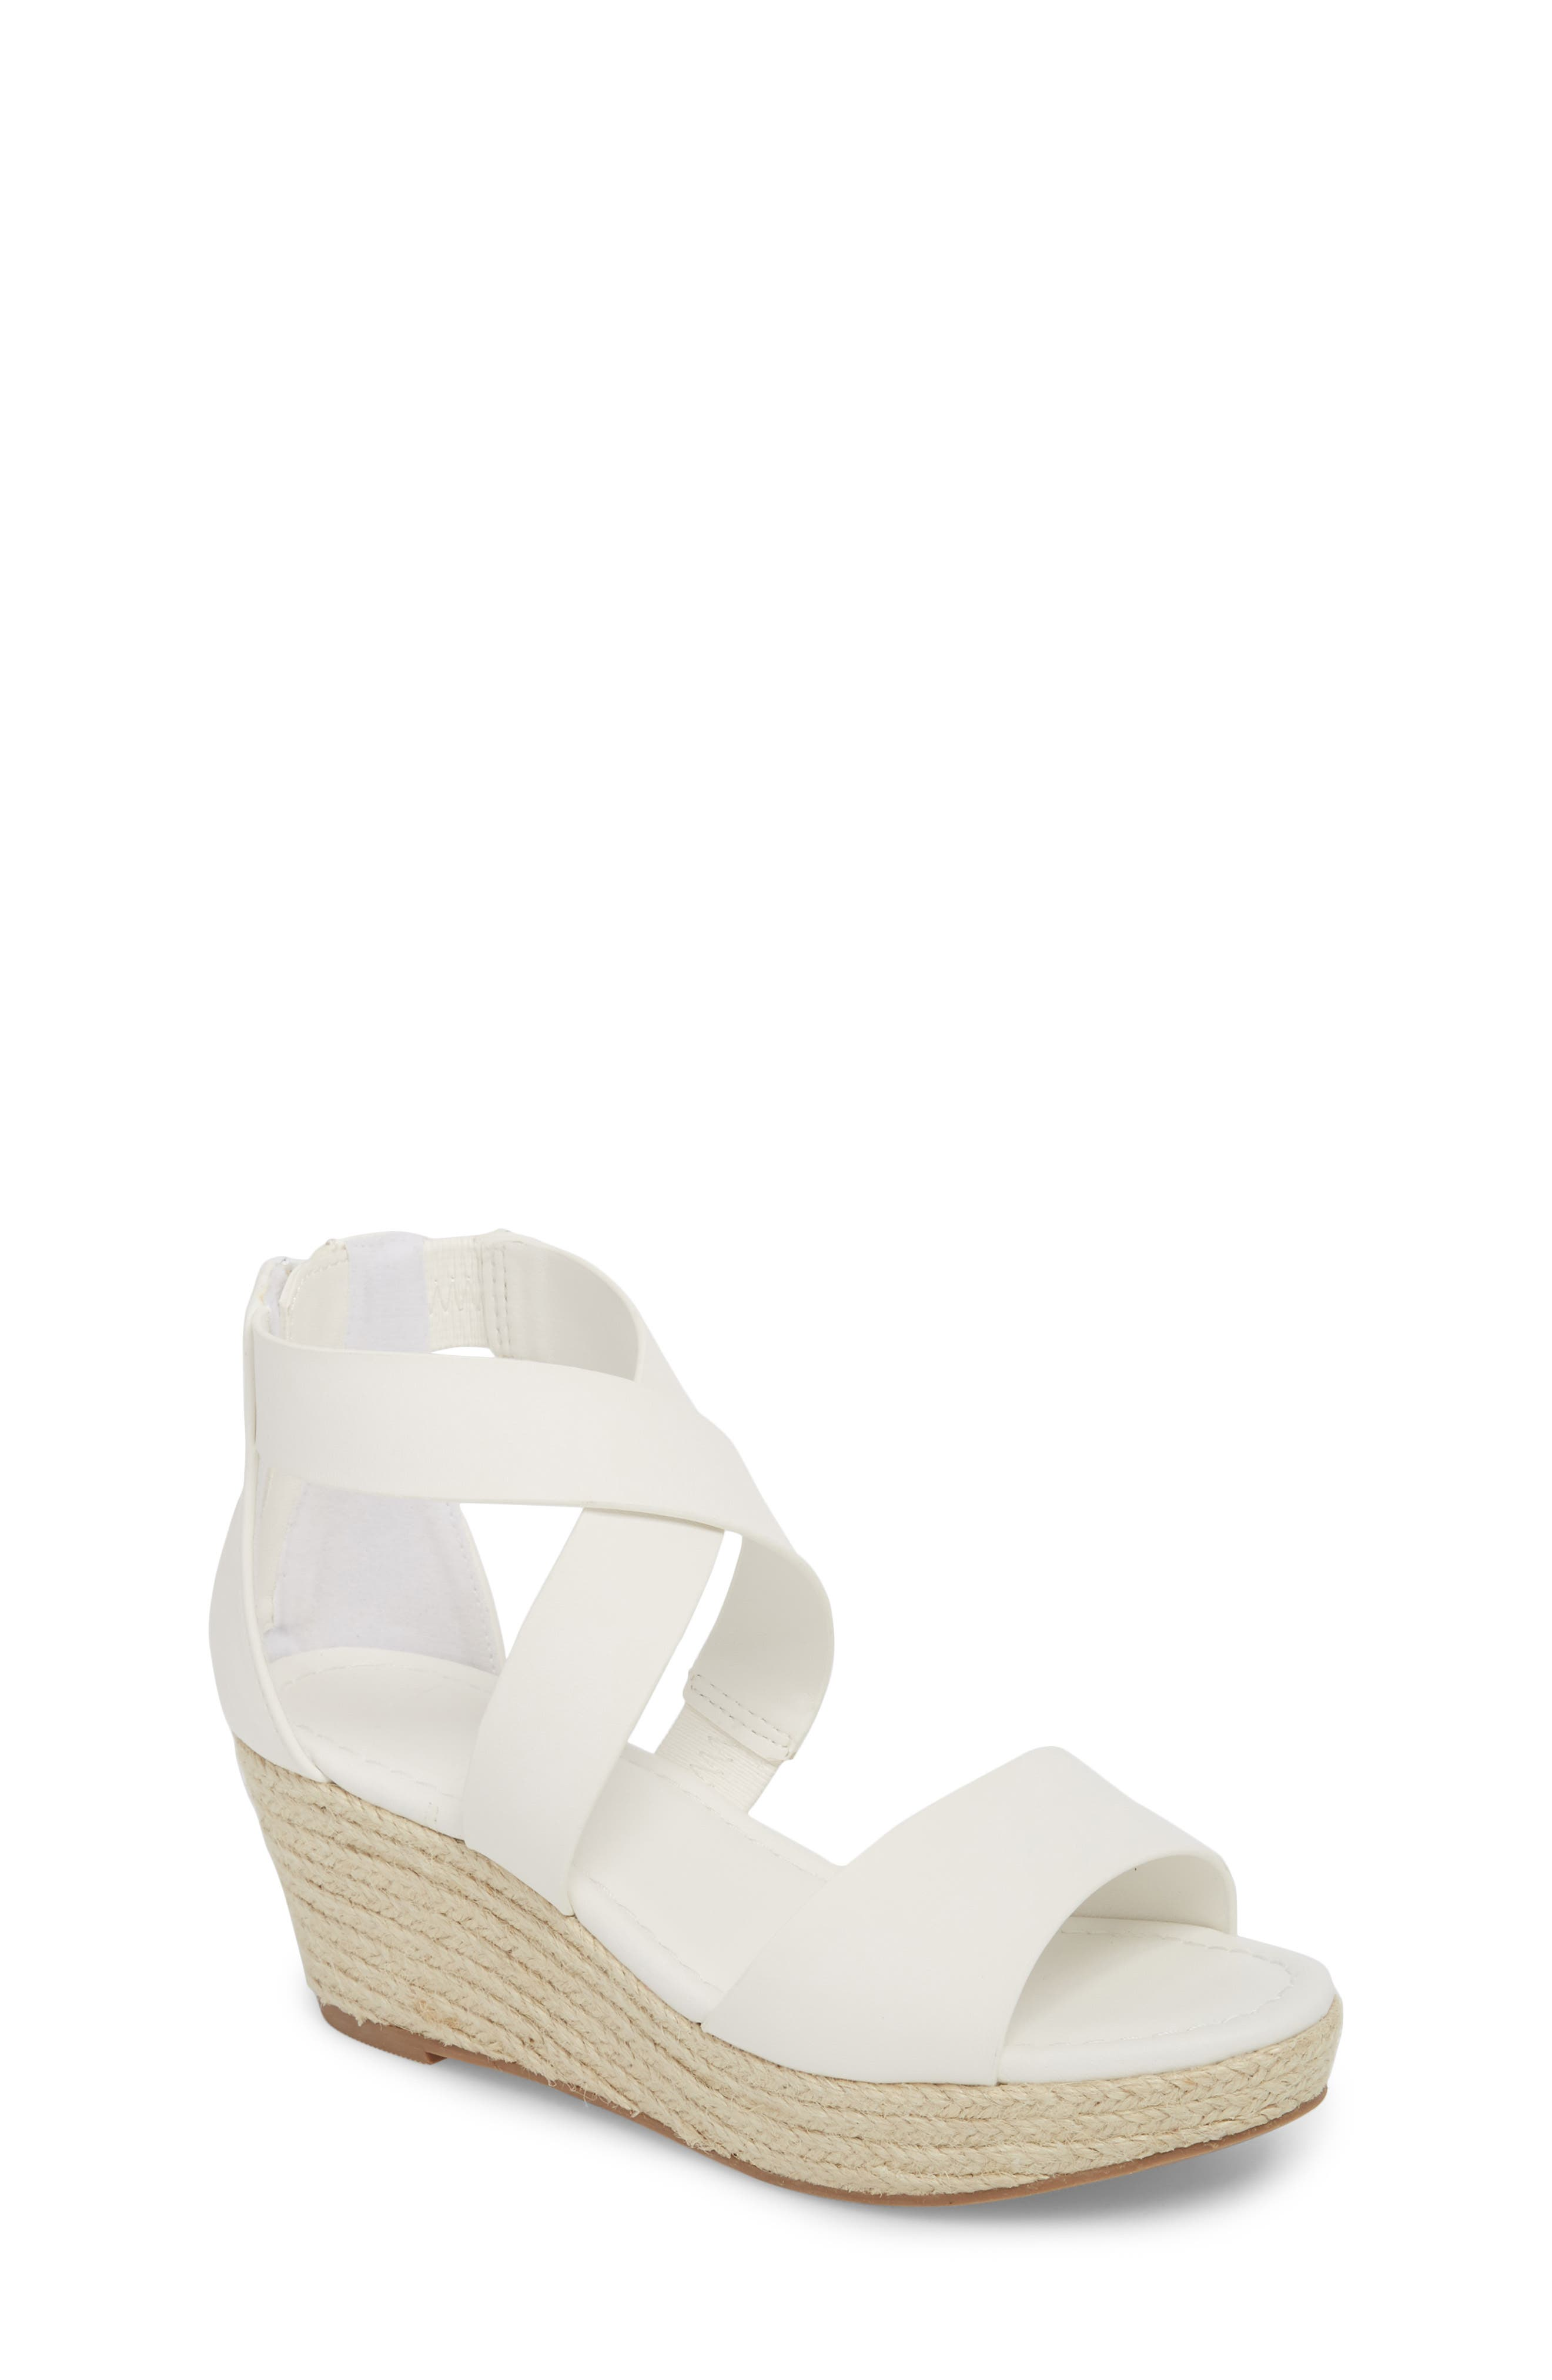 DOLCE VITA Wilma Platform Wedge Sandal, Main, color, 100